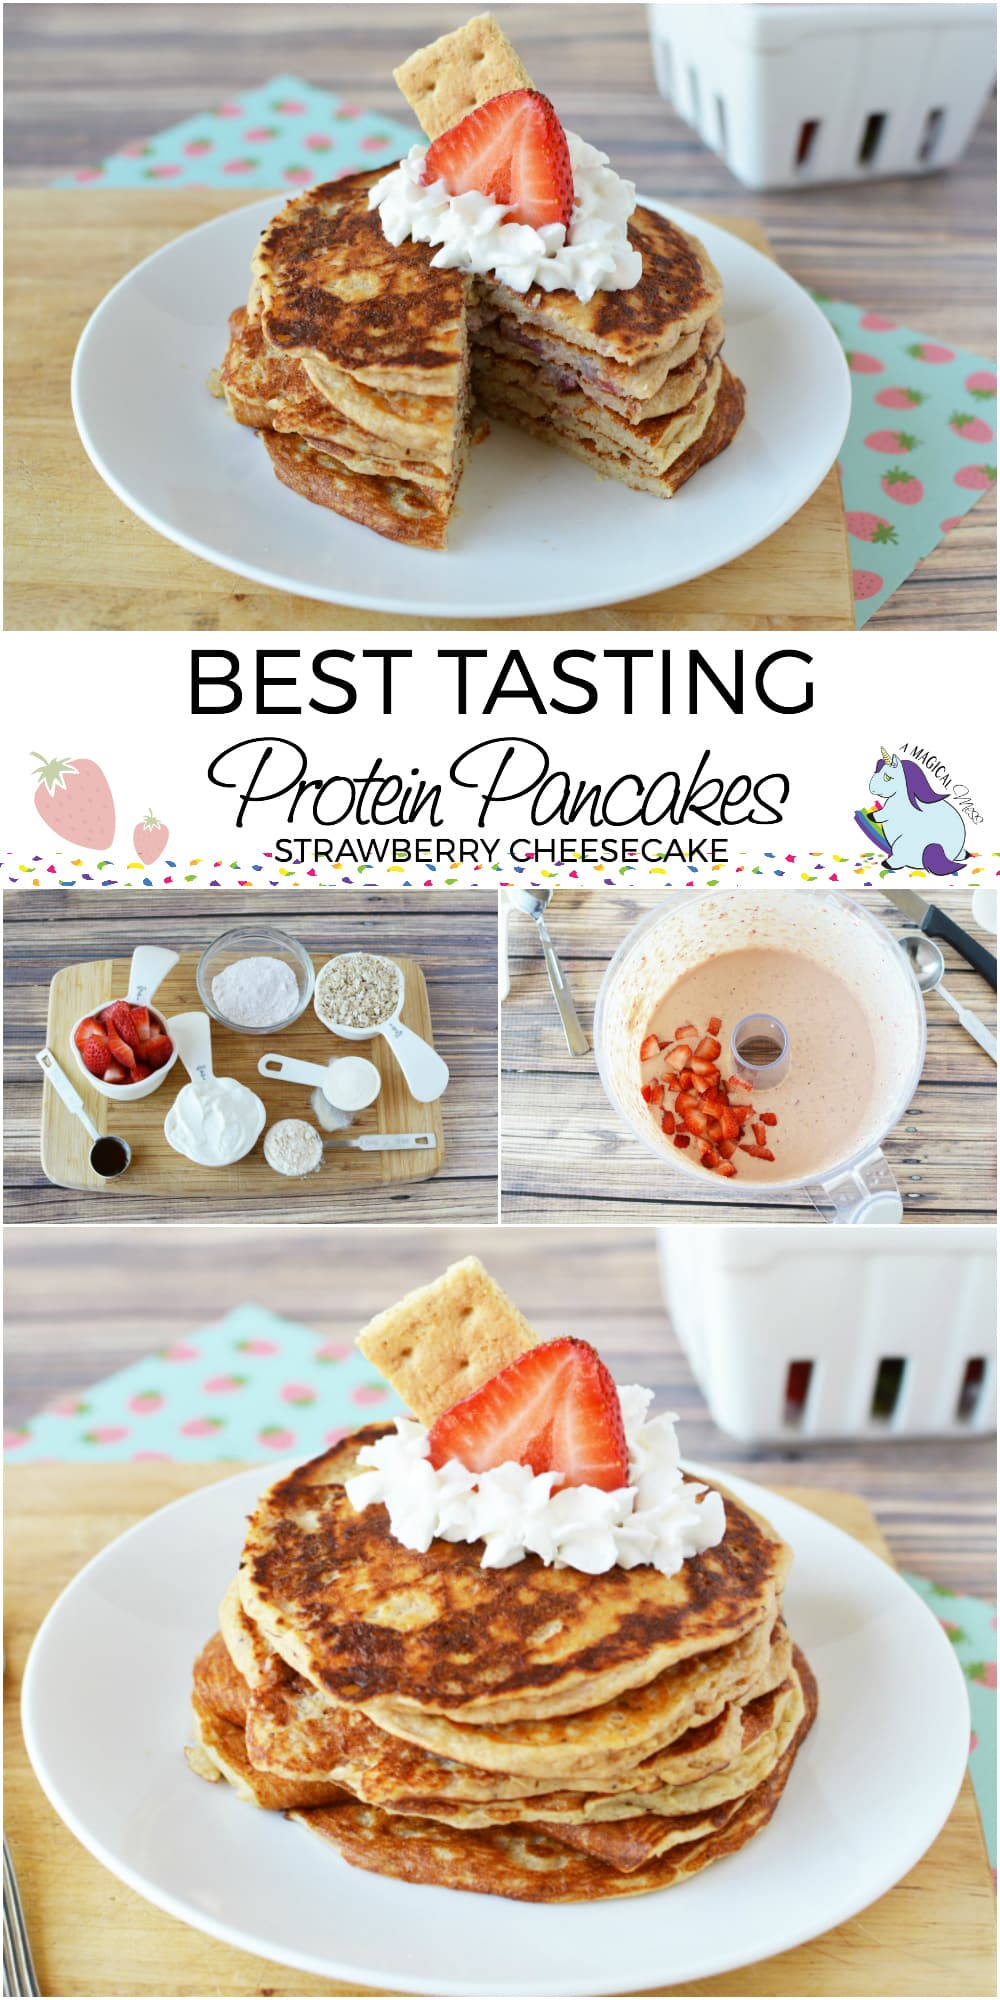 Awesome protein pancake recipe to make in bulk and freeze for the mornings! #ProteinPancakes #Recipes #breakfast #protein #pancakes #strawberry #cheesecakes